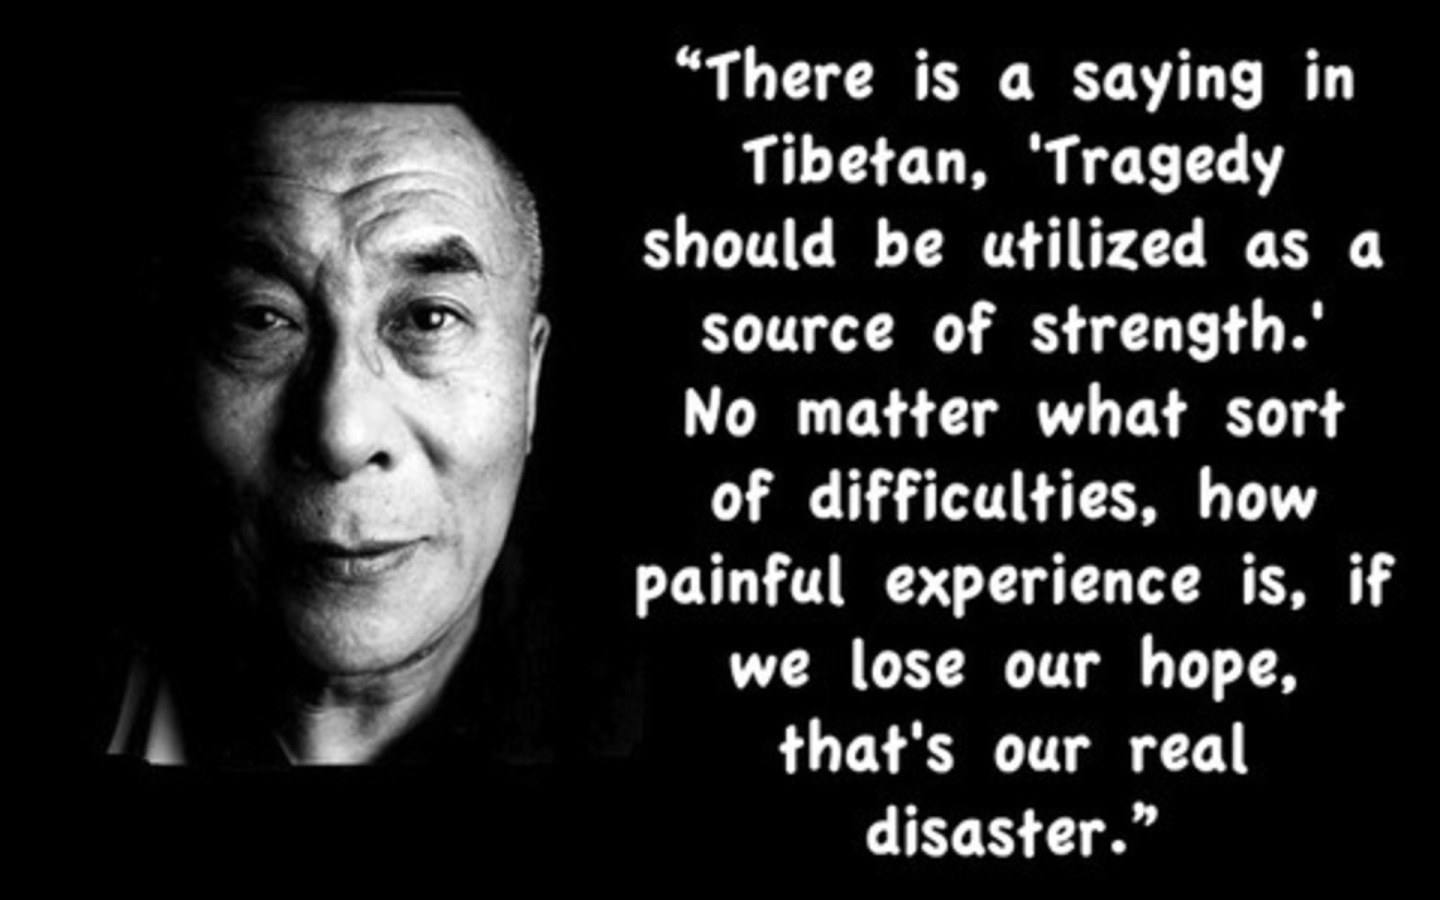 quotes about hope dalai lama quotes quotes about hope dalai lama